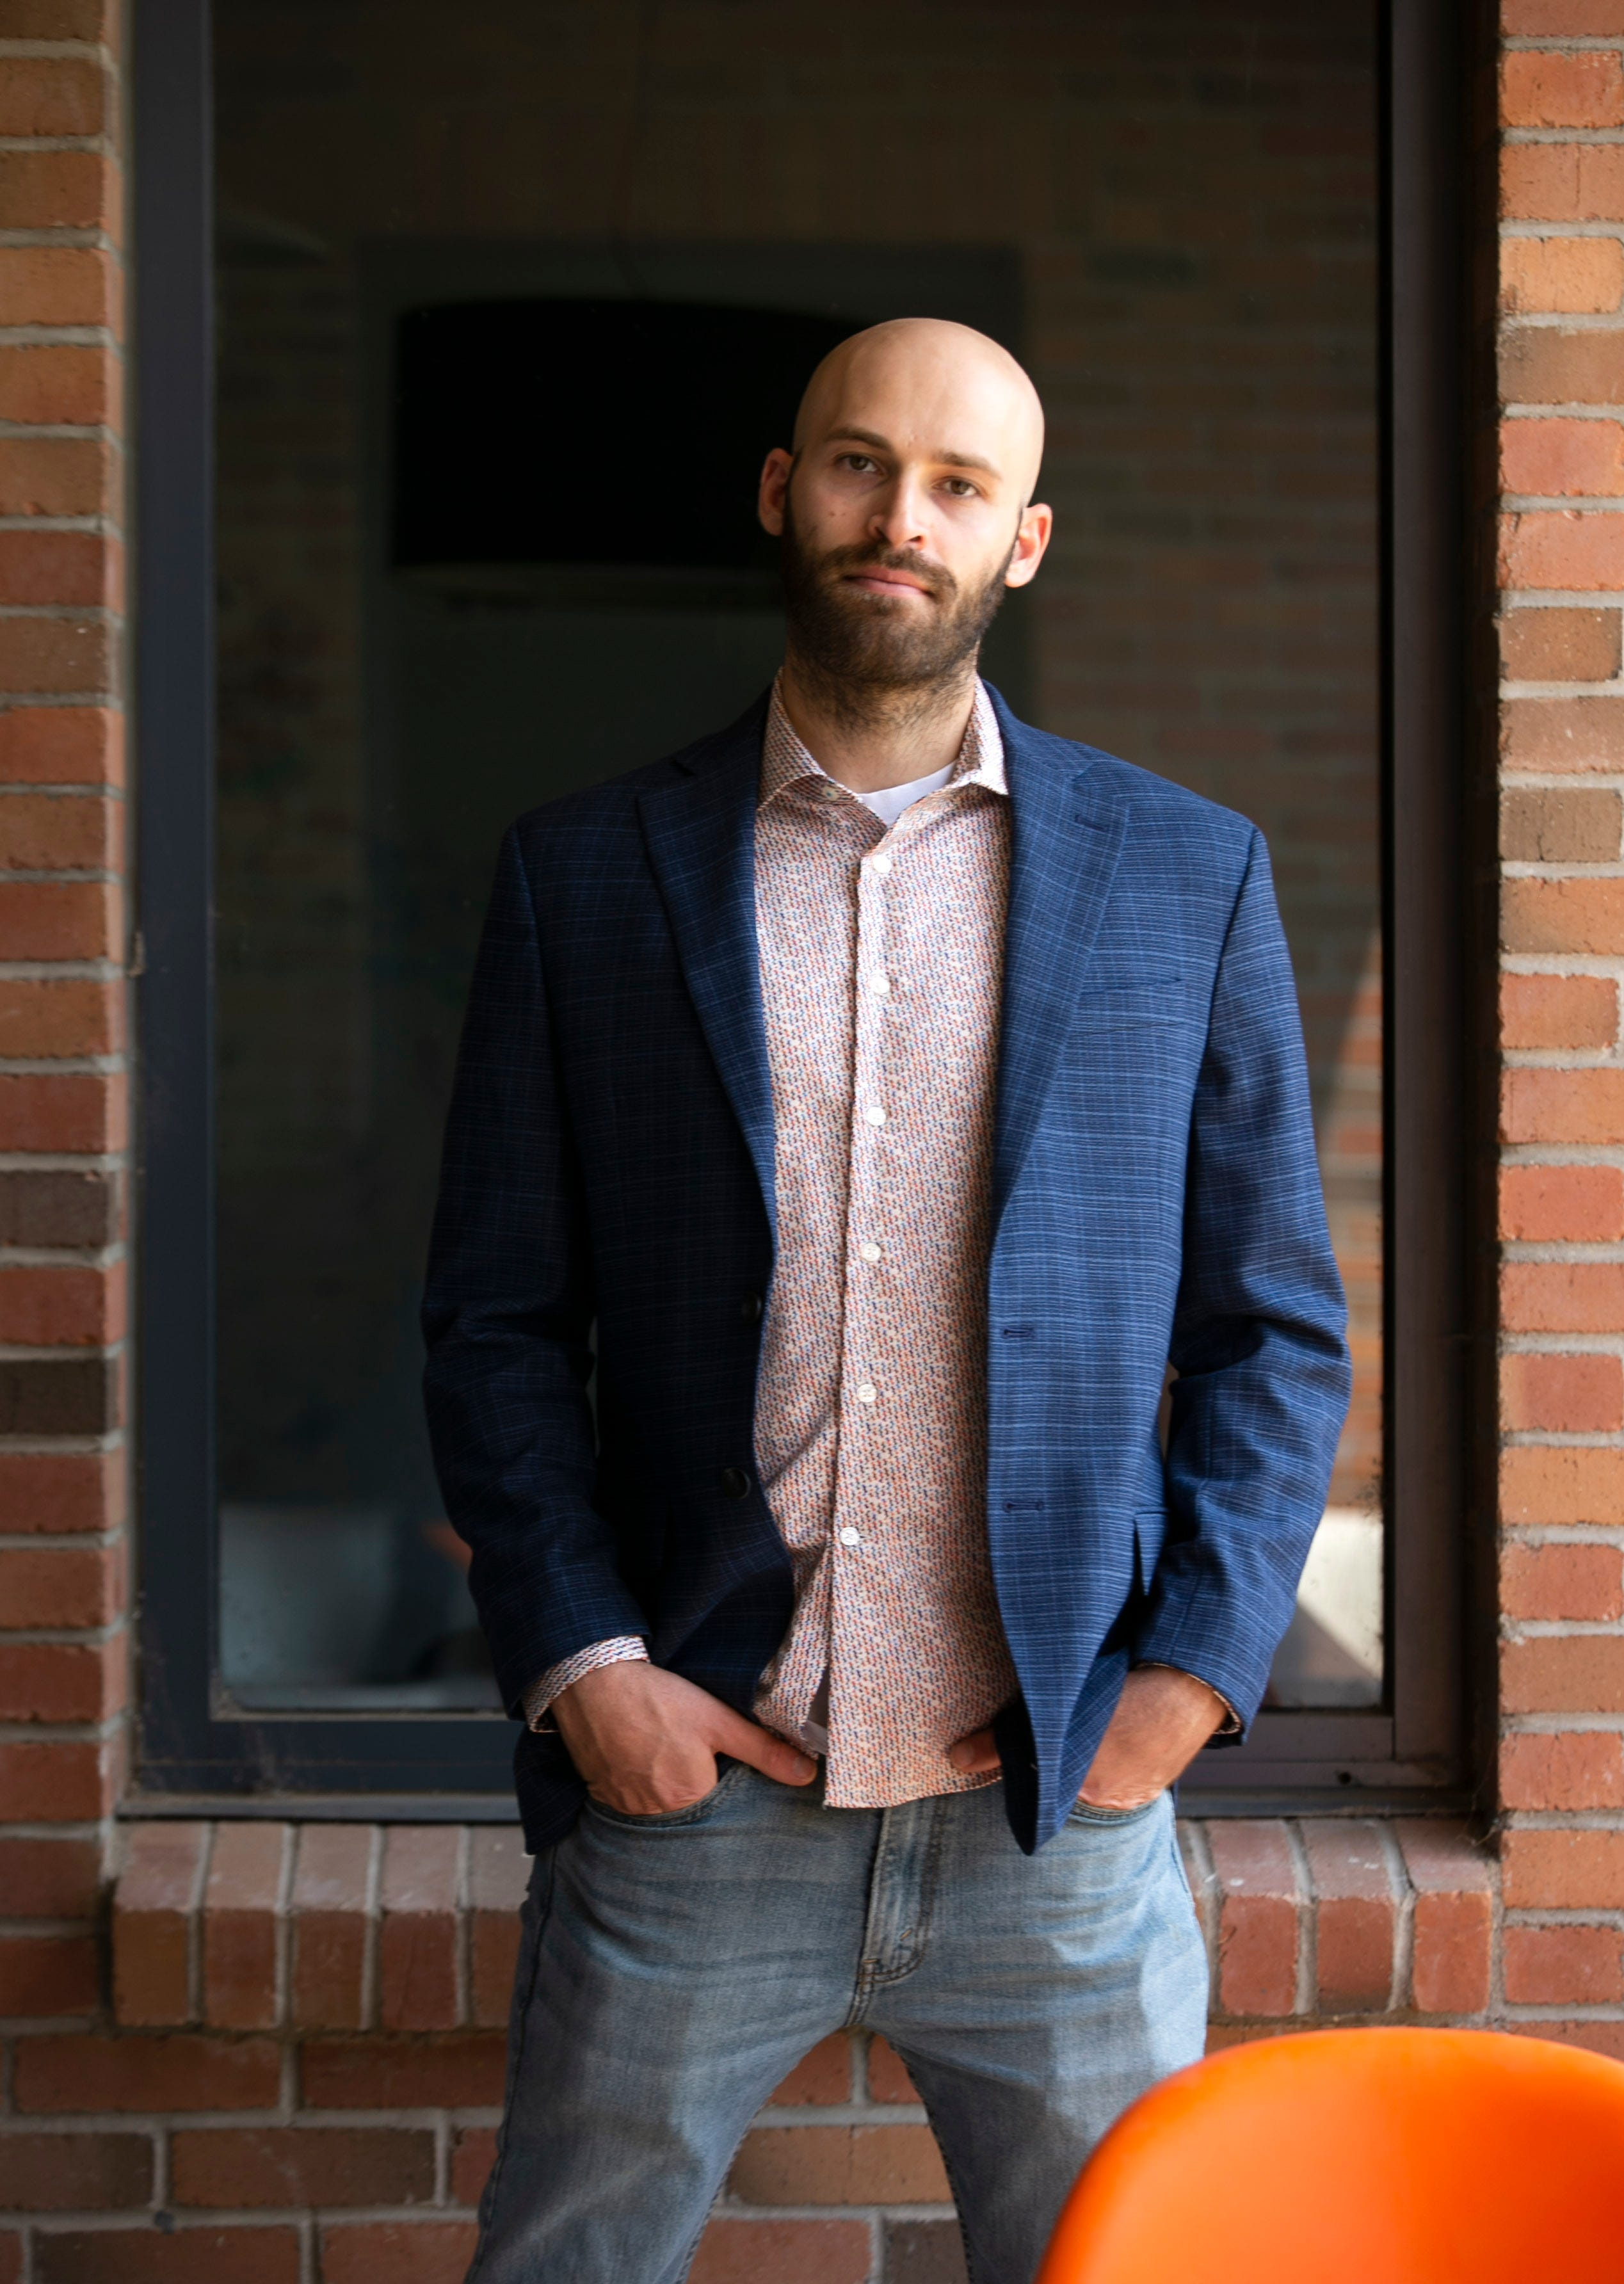 Jonathan Udell is an attorney with the Rose Law Group and a communications director with Arizona NORML. He is seen at the Rose Law Group offices in Scottsdale on July 16, 2021.